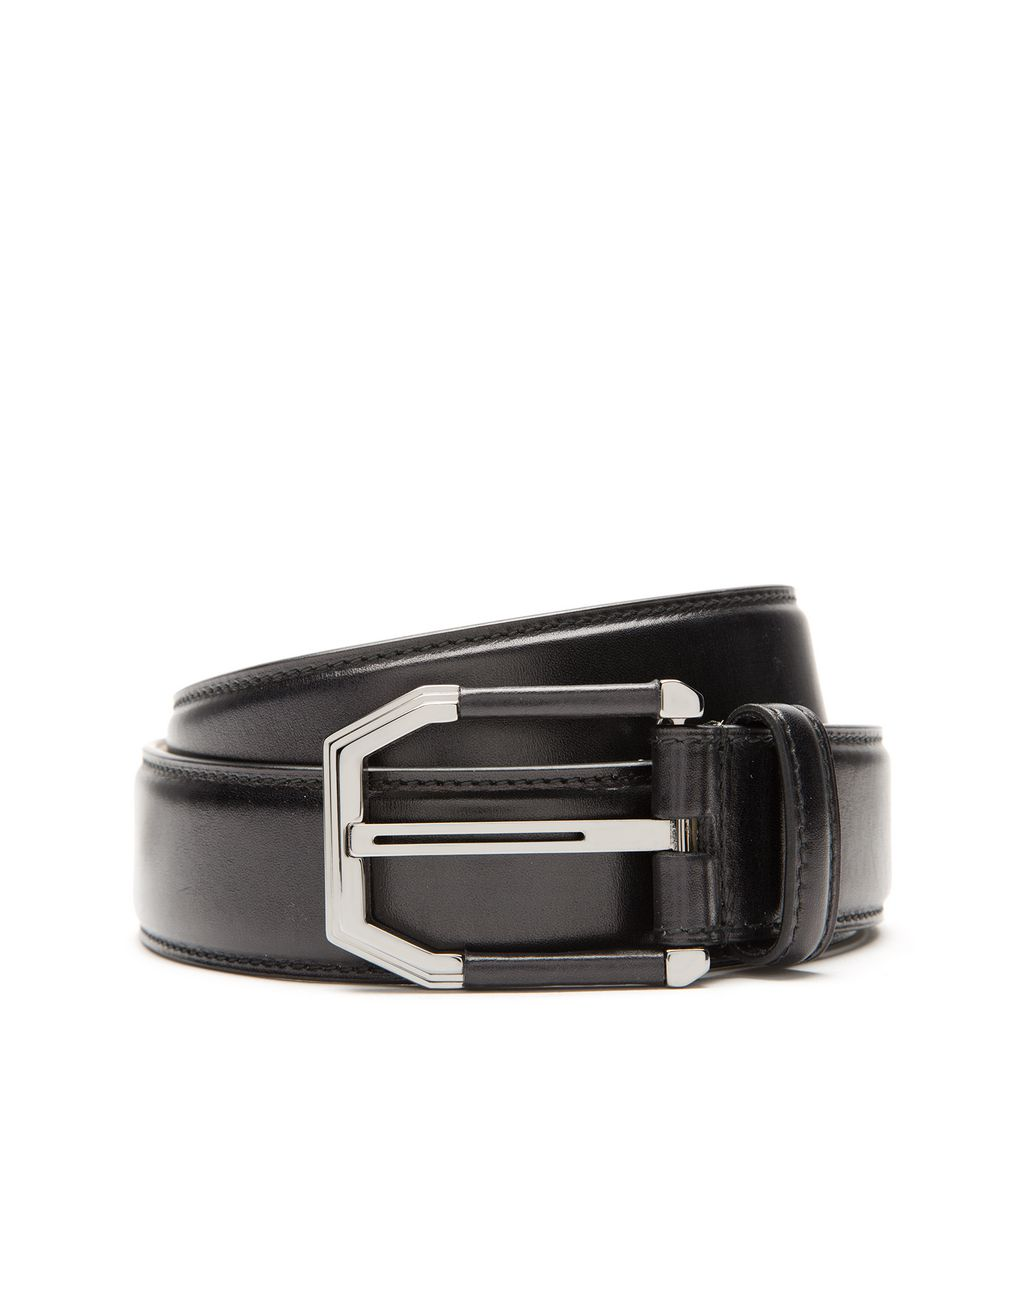 BRIONI Black Belt in Calfskin Leather with Leather Details on Buckle Belt [*** pickupInStoreShippingNotGuaranteed_info ***] r